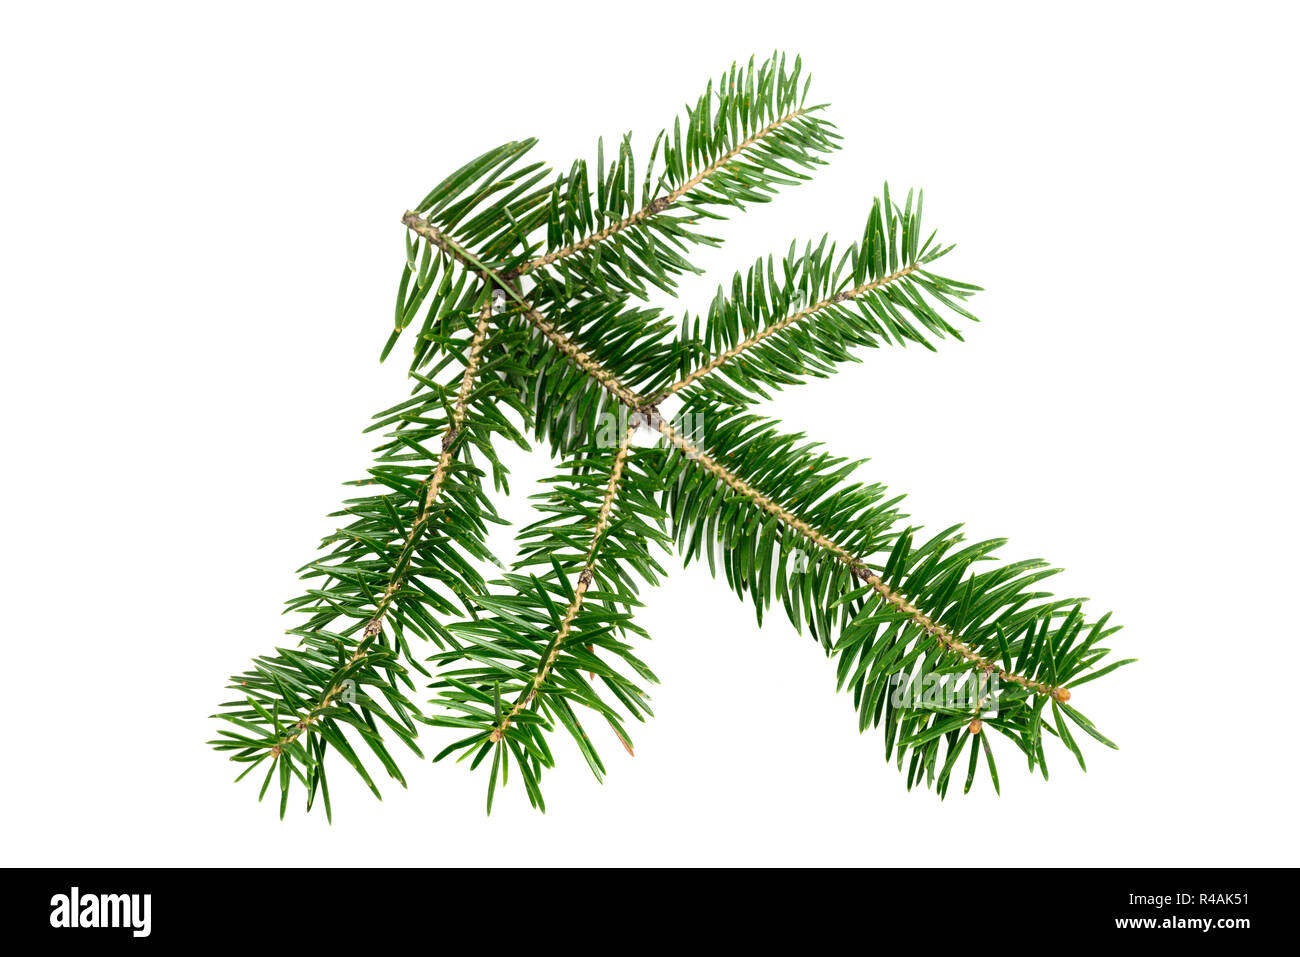 Evergreen branch of Christmas tree isolated on white background. Design element - Stock Image